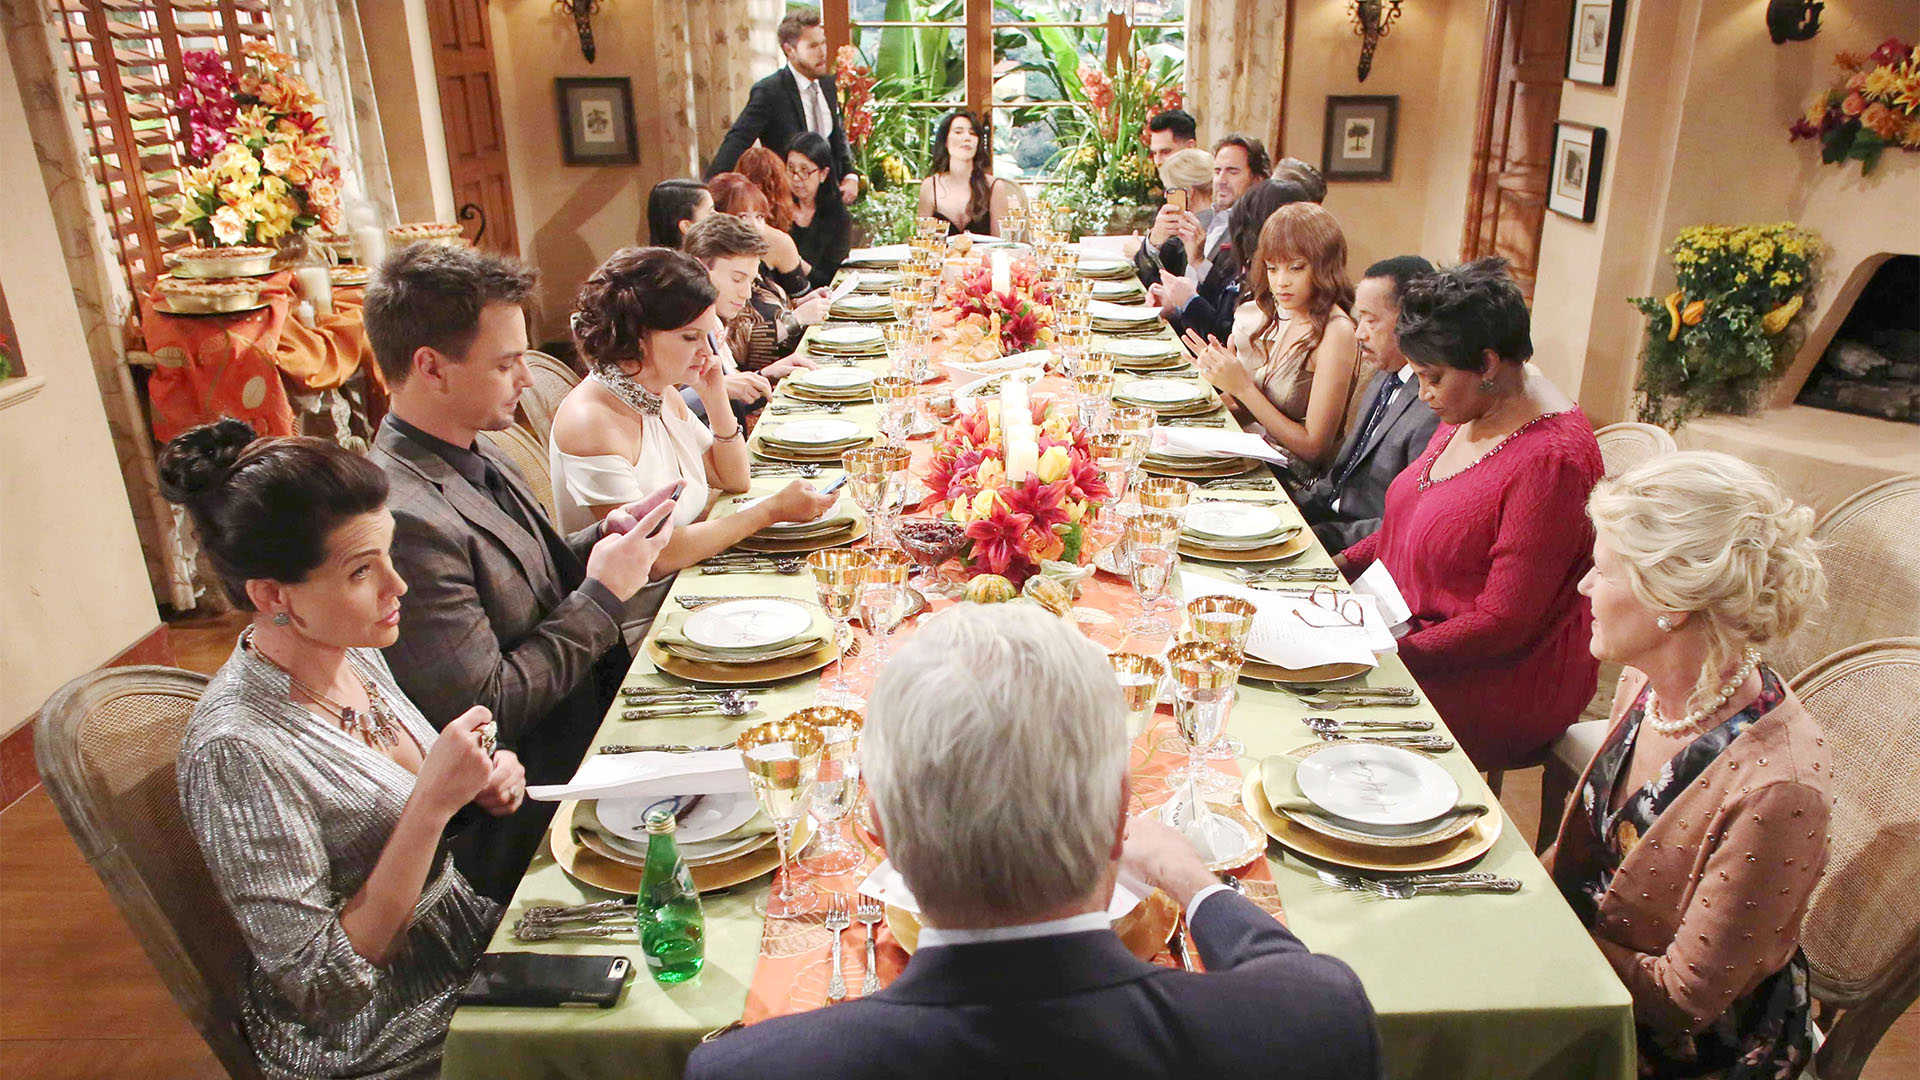 As is tradition, the Forrester, Logan, Spencer, Avant and Spectra families put their difference aside and join together for Thanksgiving and give gratitude.